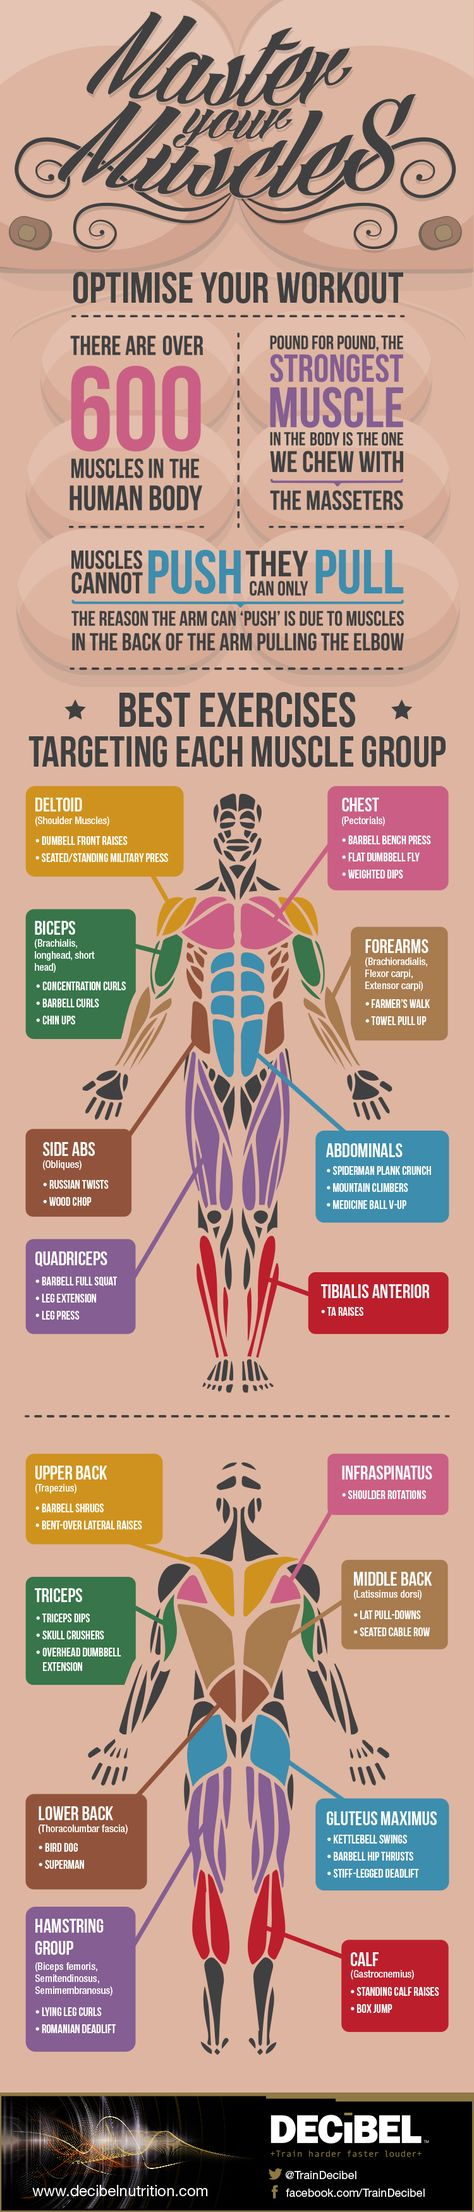 Master Your Muscles: Best Exercises For Each Muscle Group #Infographic